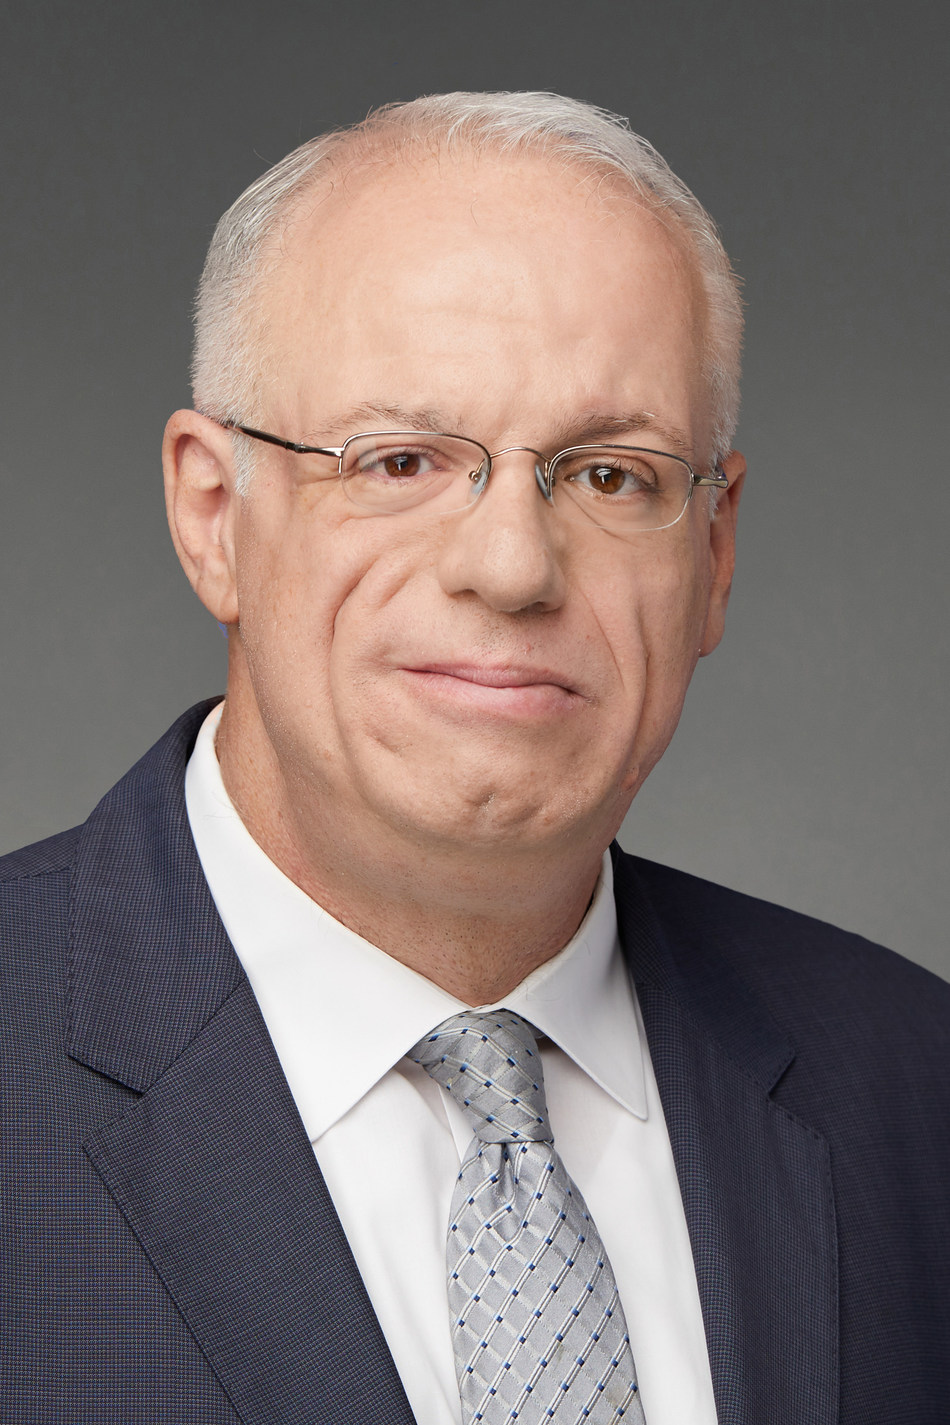 Eyad Mizian has joined Greeley and Hansen as Managing Director of Mid-Atlantic Operations.